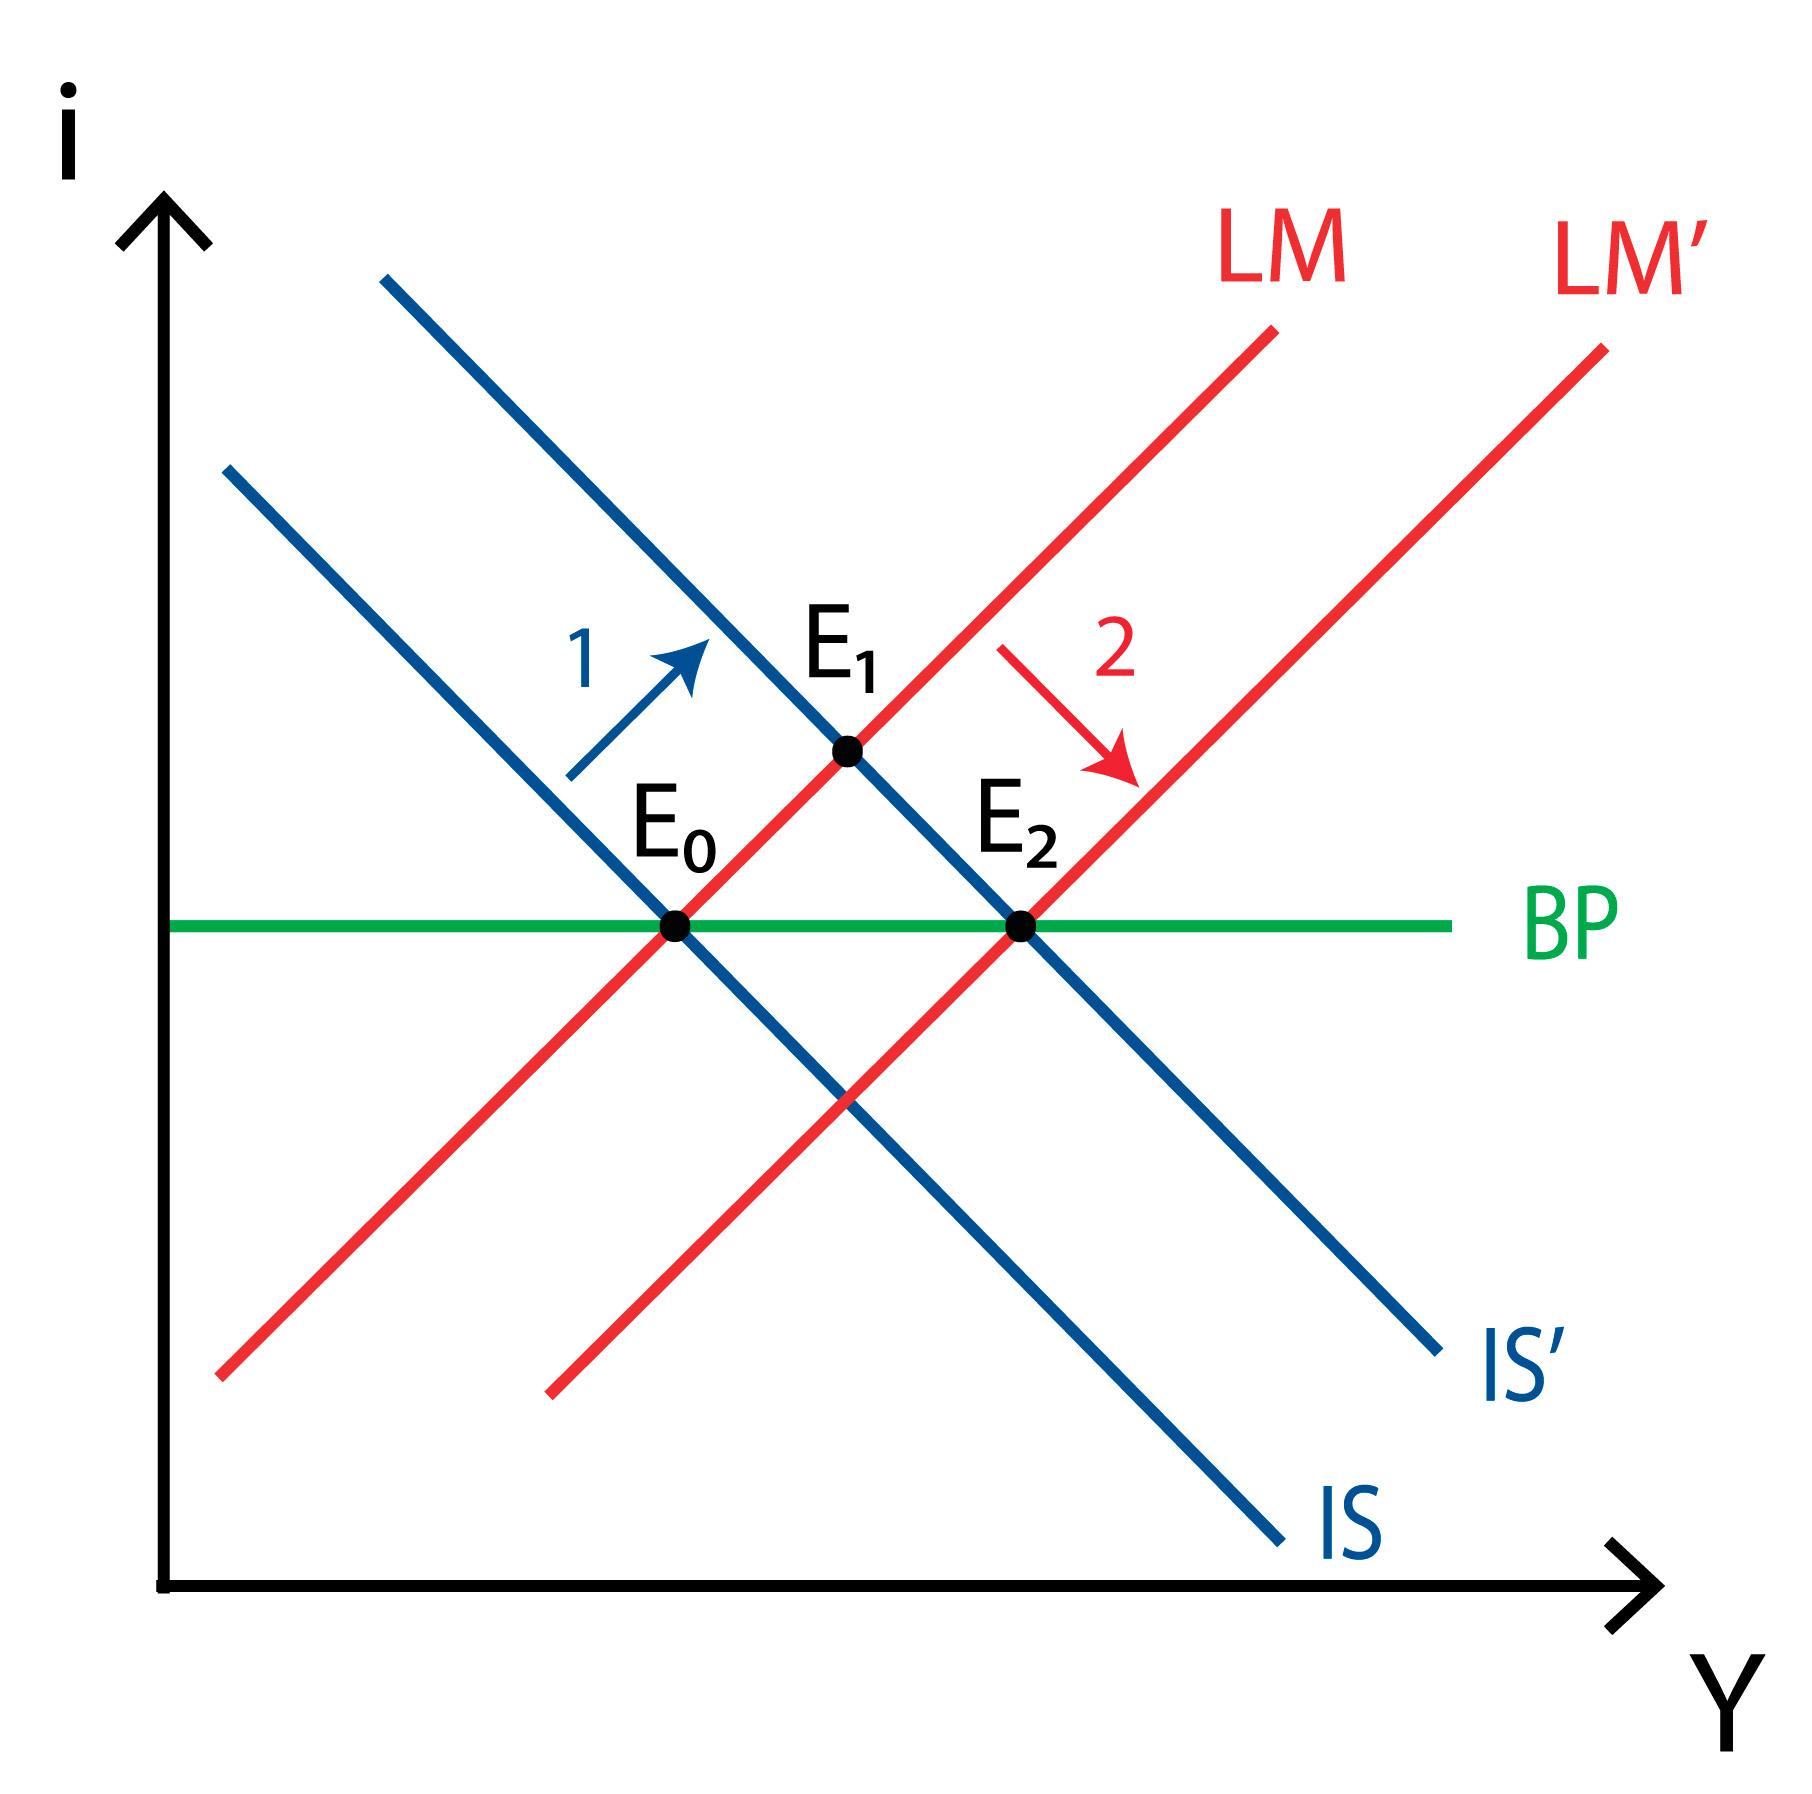 IS-LM-BP model - Perfect capital mobility - Fixed exchange - Fiscal policy